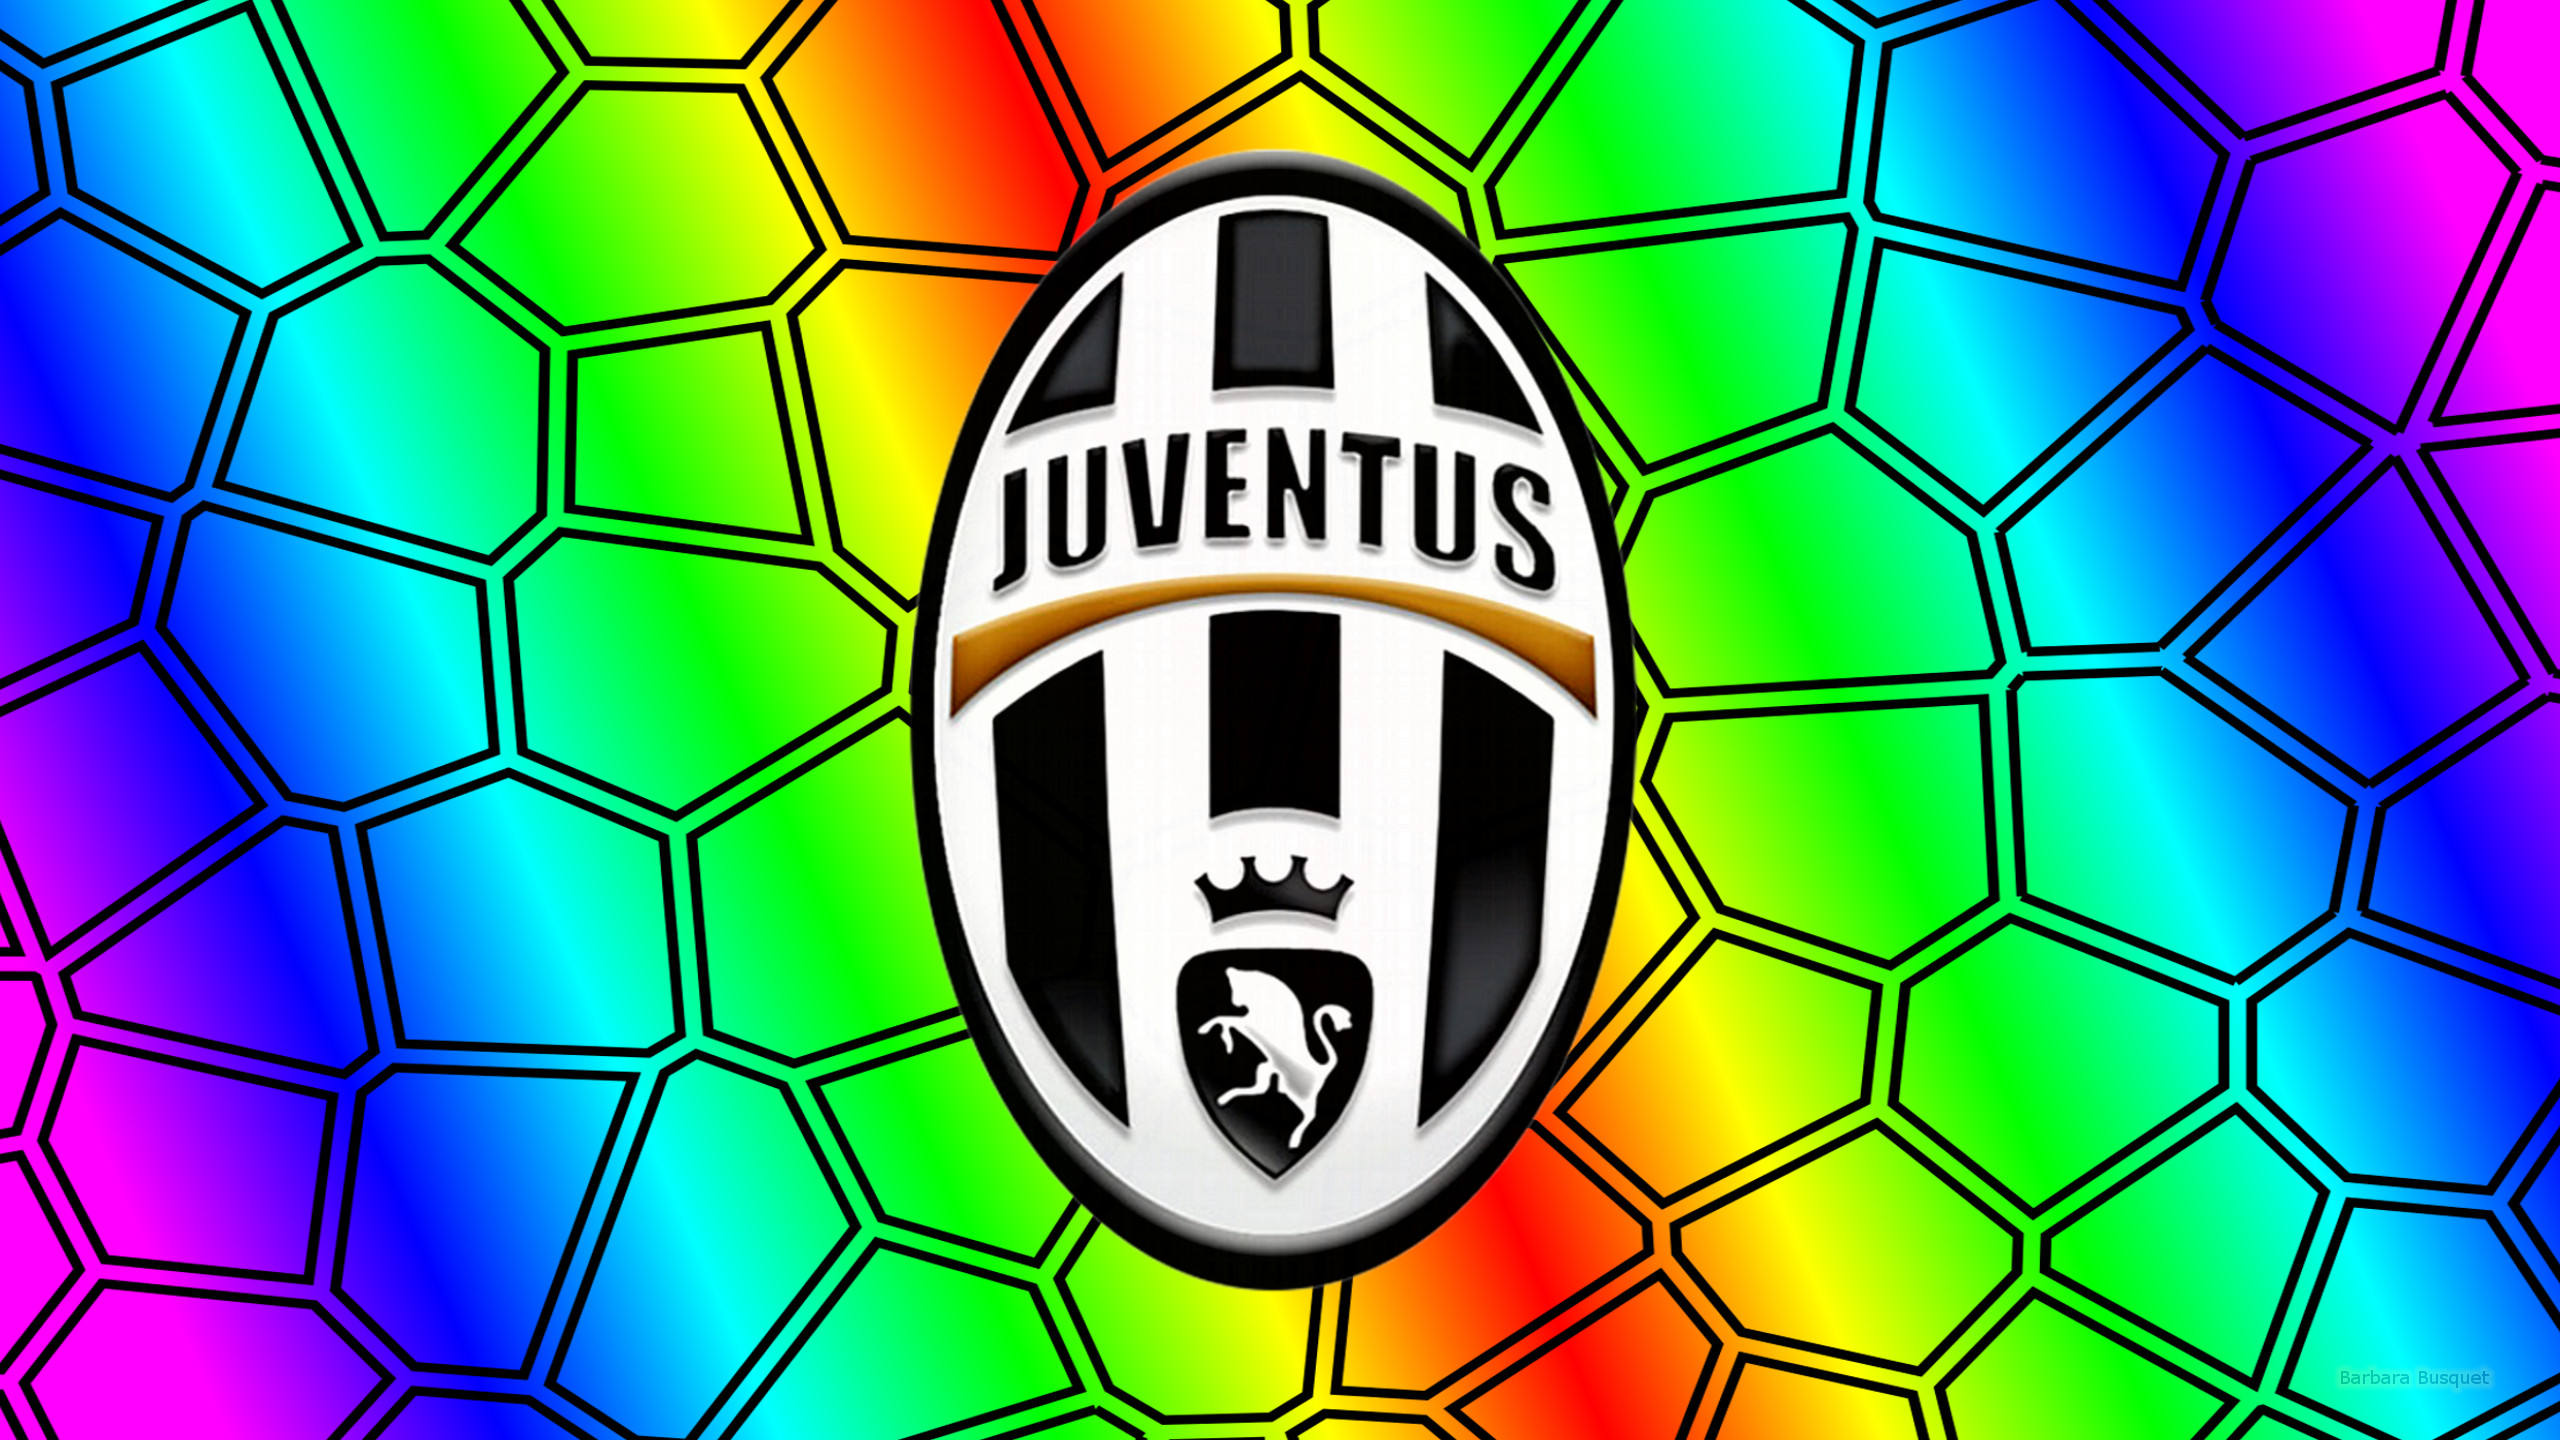 Juventus F C Hd Wallpaper Background Image 2560x1440 Id 989363 Wallpaper Abyss